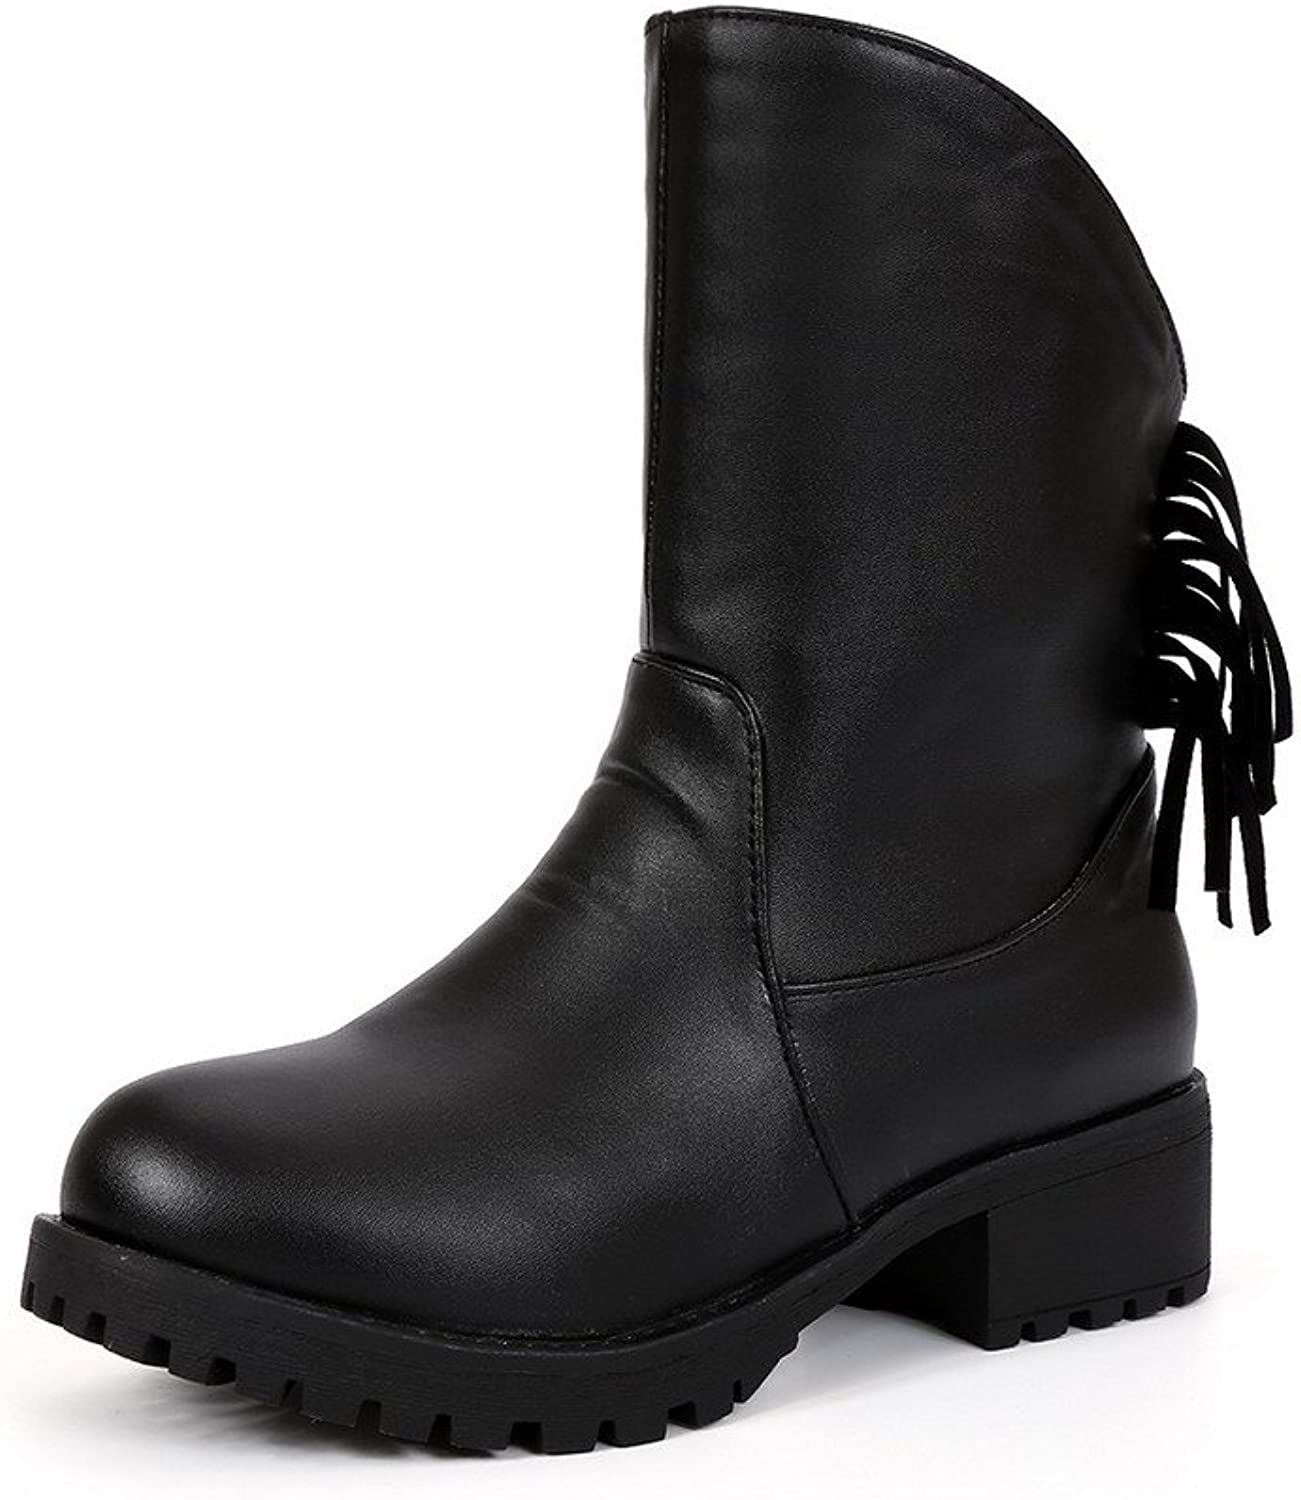 WeenFashion Women's Solid PU Low Heels Pull-On Round Closed Toe Boots